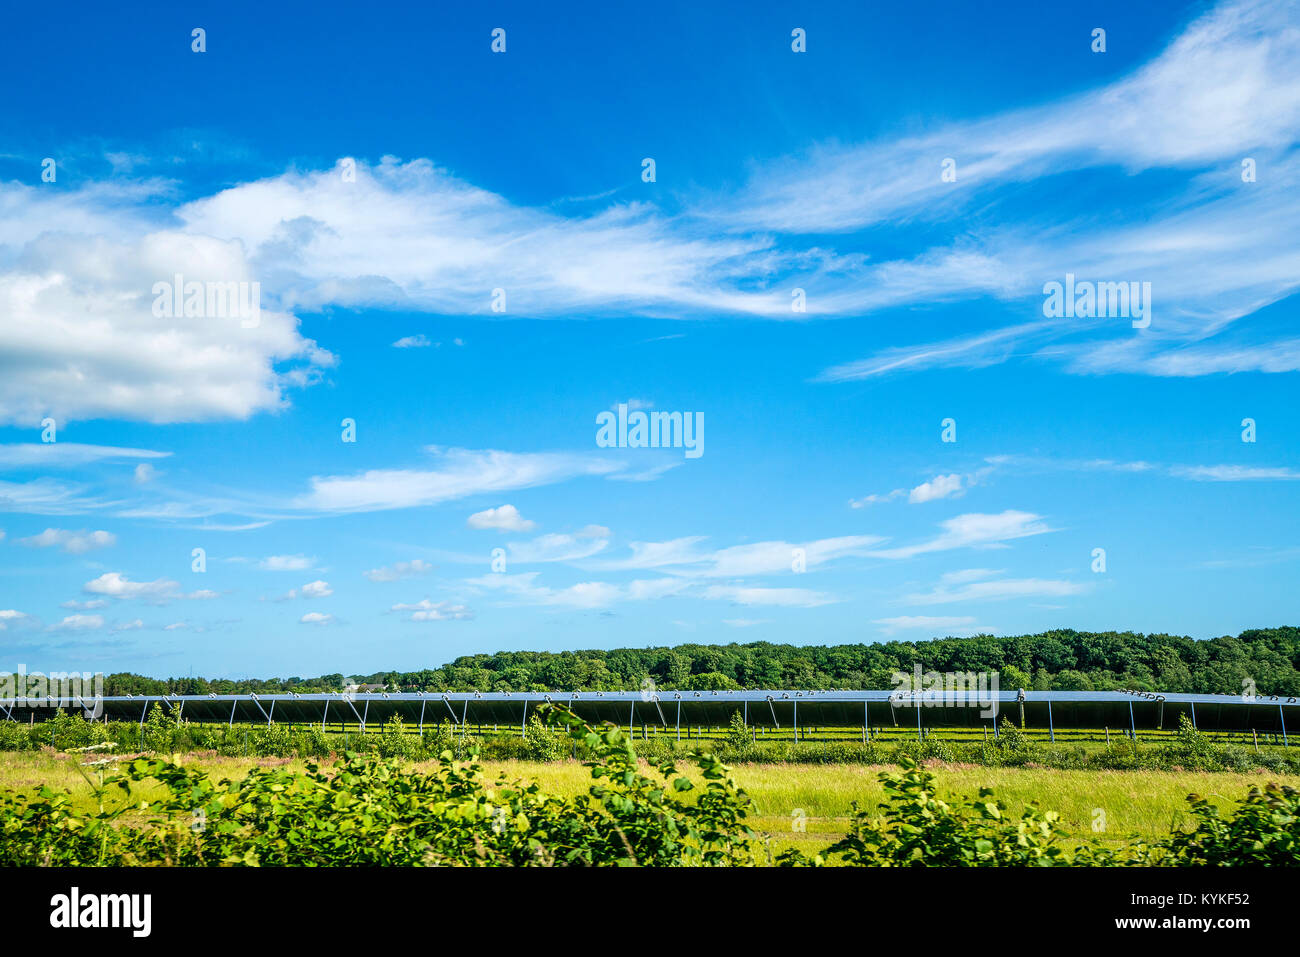 Solar cell park on a green field with blue sky in the summer producing eco friendly energy - Stock Image